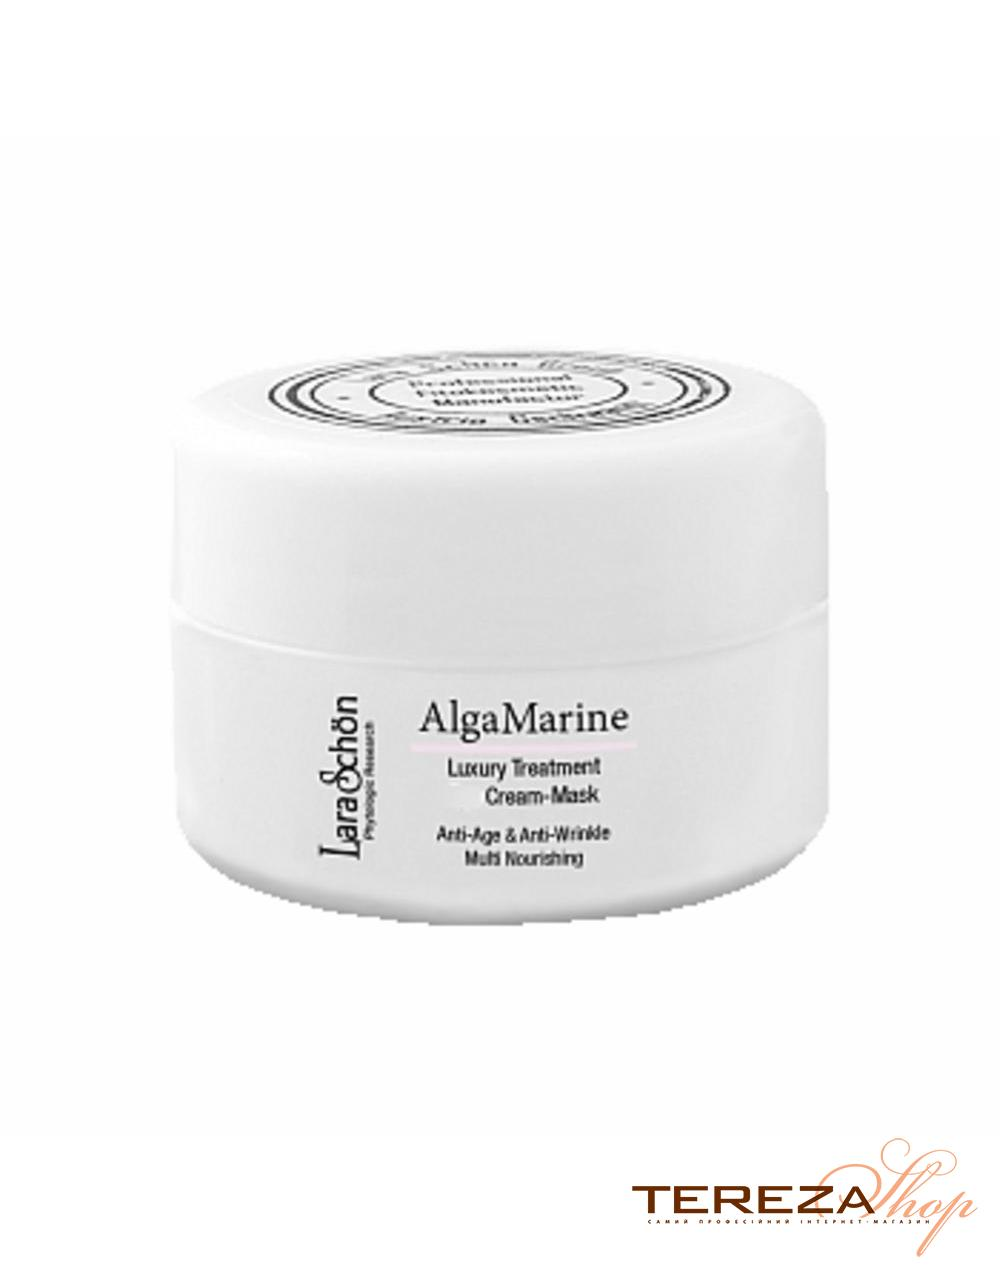 AlgaeMarine Quintessentially Mask  LARA SCHОN | Tereza Shop